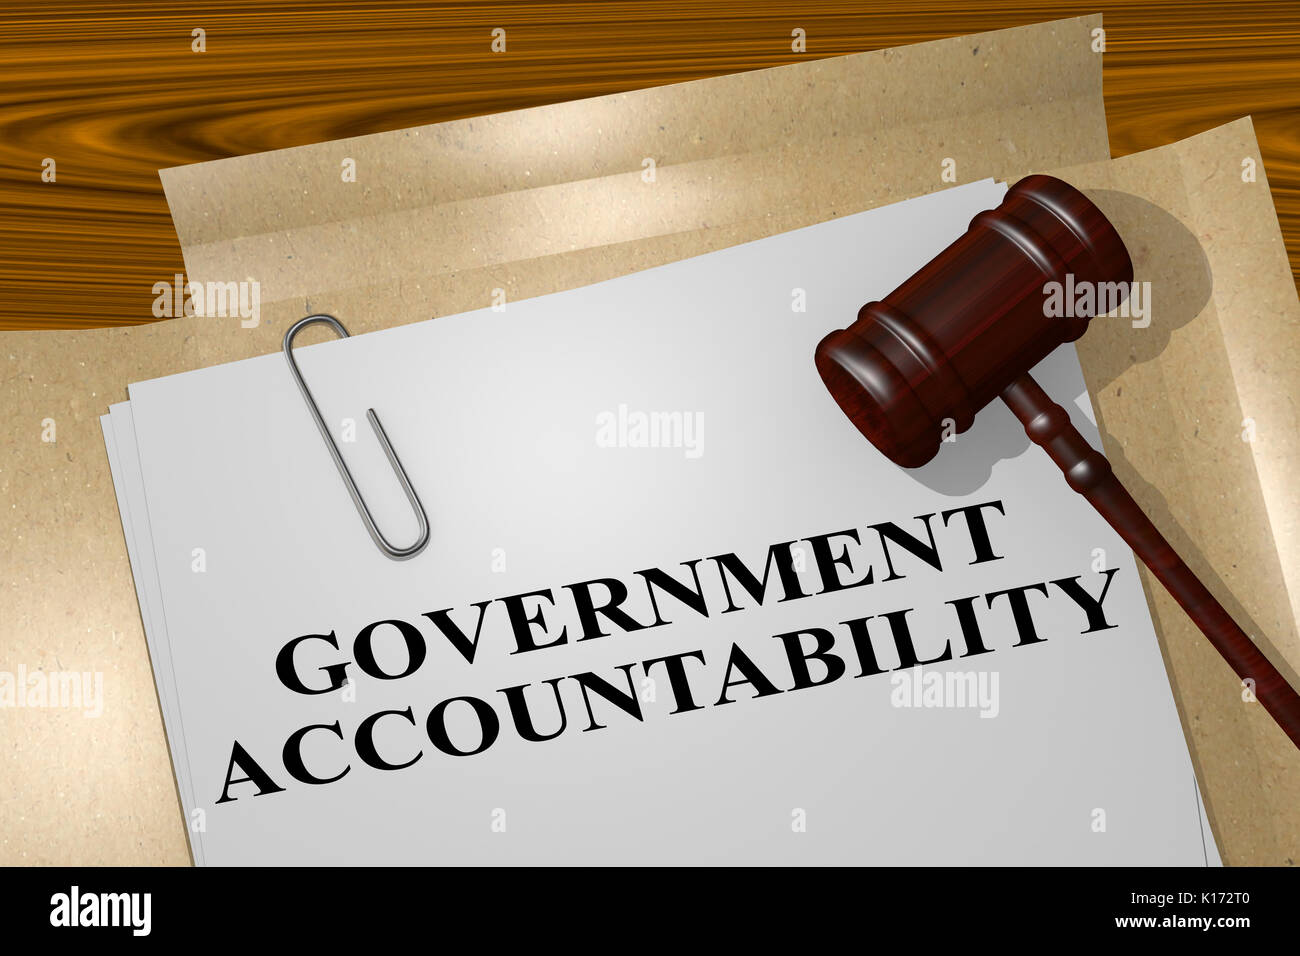 3D illustration of 'GOVERNMENT ACCOUNTABILITY' title on legal document - Stock Image